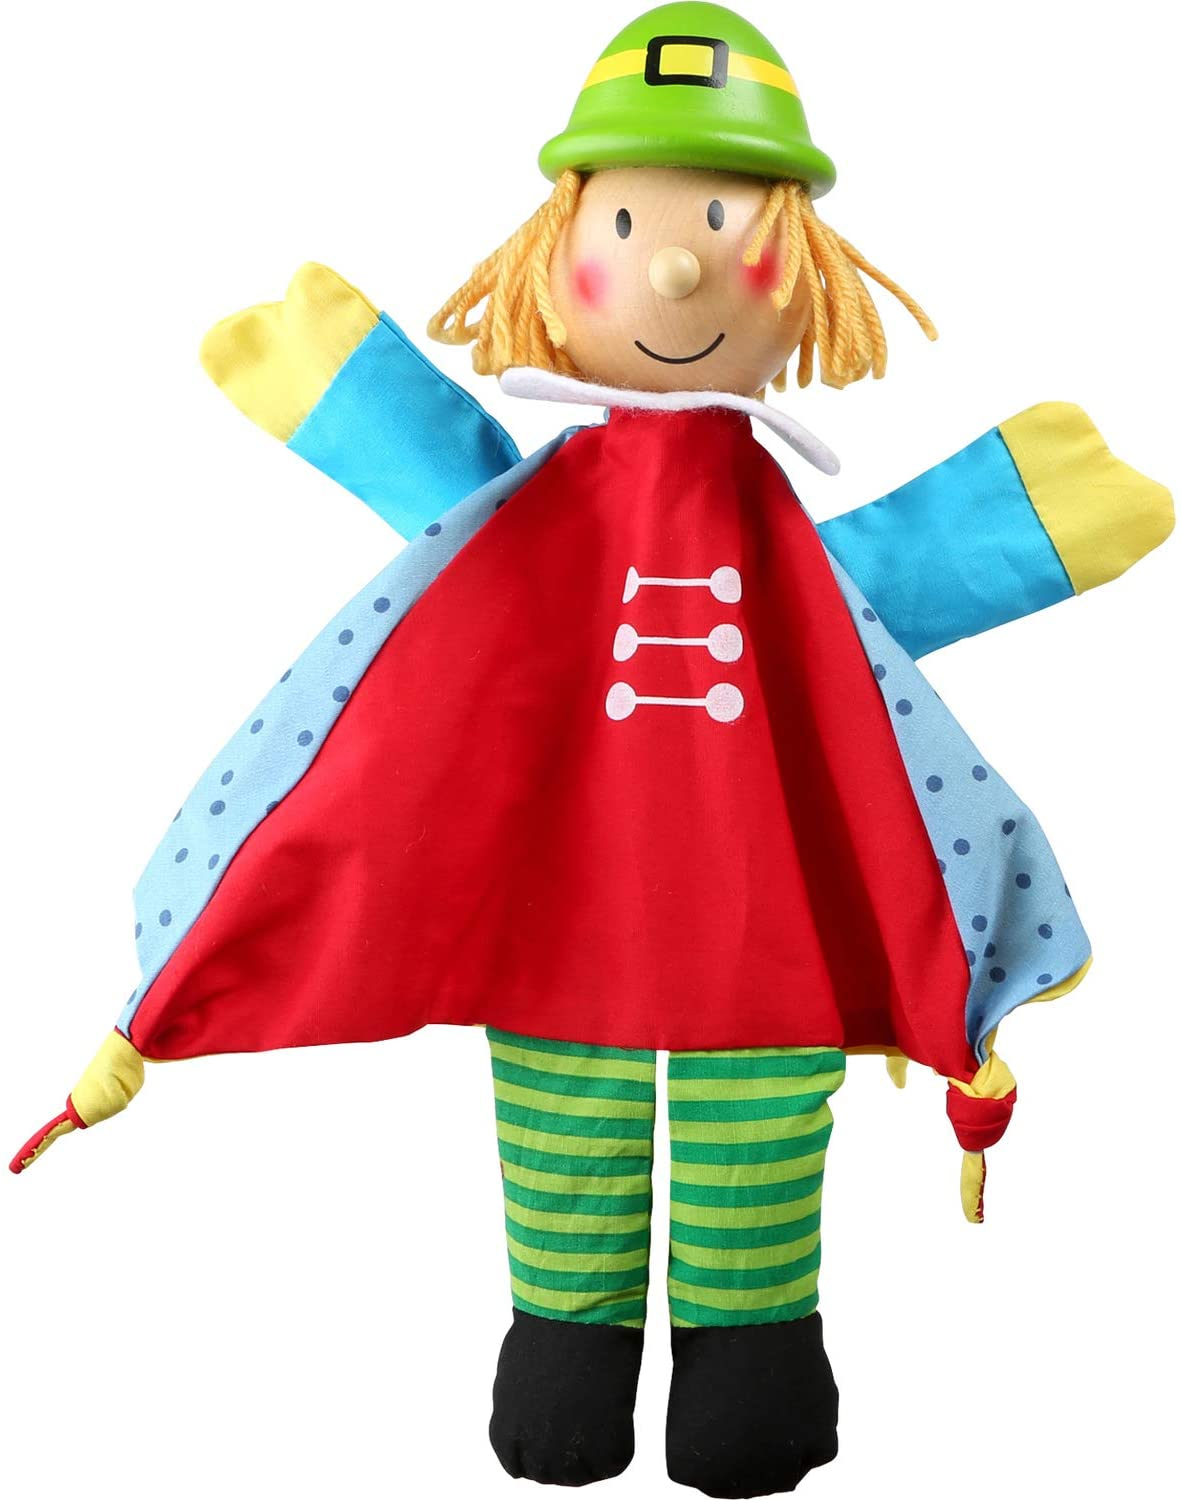 Small Foot 10237 Prince Hand Puppet